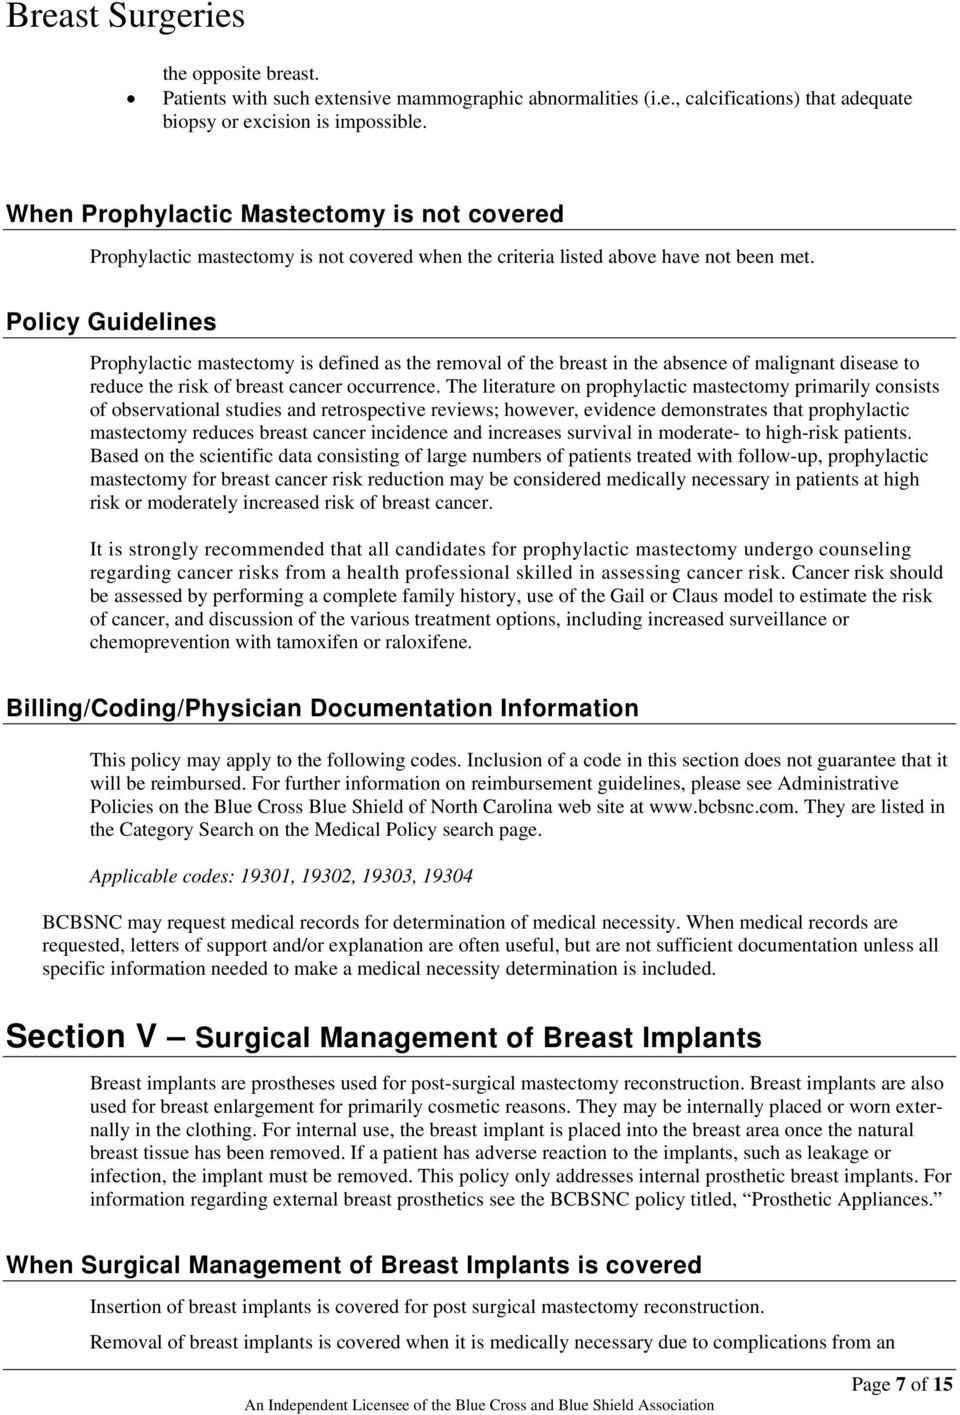 Policy Guidelines Prophylactic mastectomy is defined as the removal of the breast in the absence of malignant disease to reduce the risk of breast cancer occurrence.